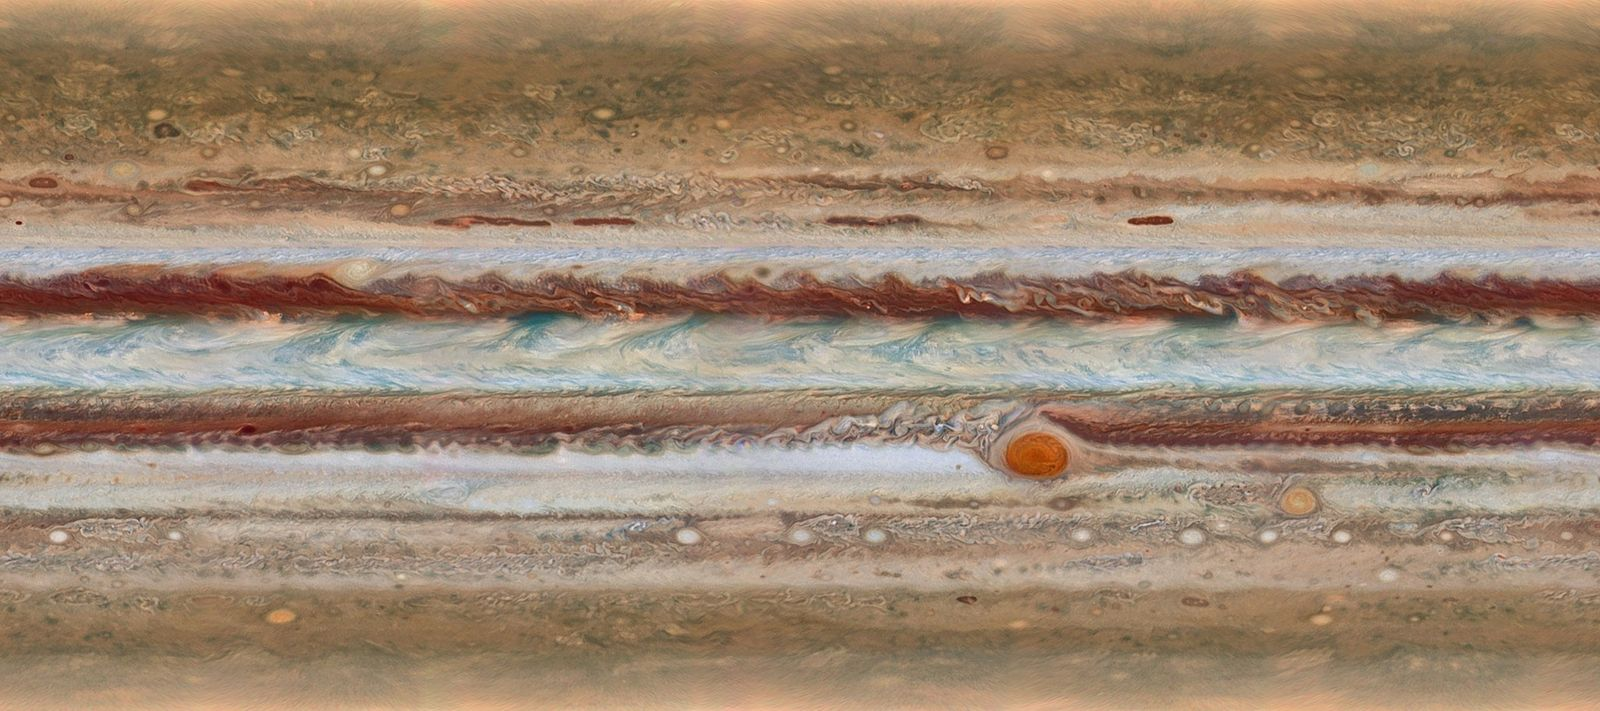 Hubble Video Reveals Mystery Object In Jupiter's Red Spot